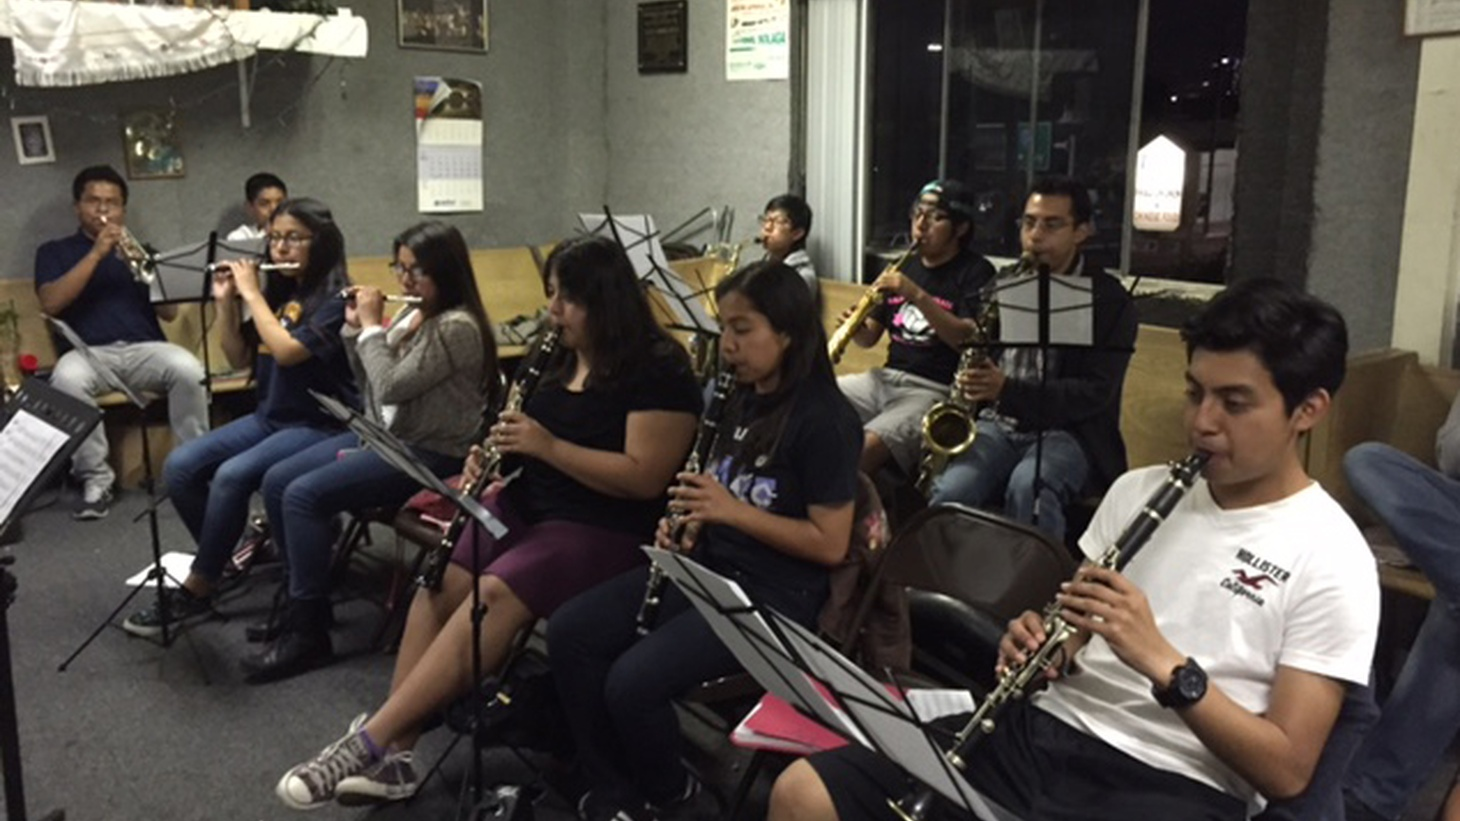 PhD student Daina Sanchez is studying how being in a Oaxacan band in Los Angeles affects young people's Oaxacan identity. So every week, she attends a youth Oaxacan band practice in Koreatown.